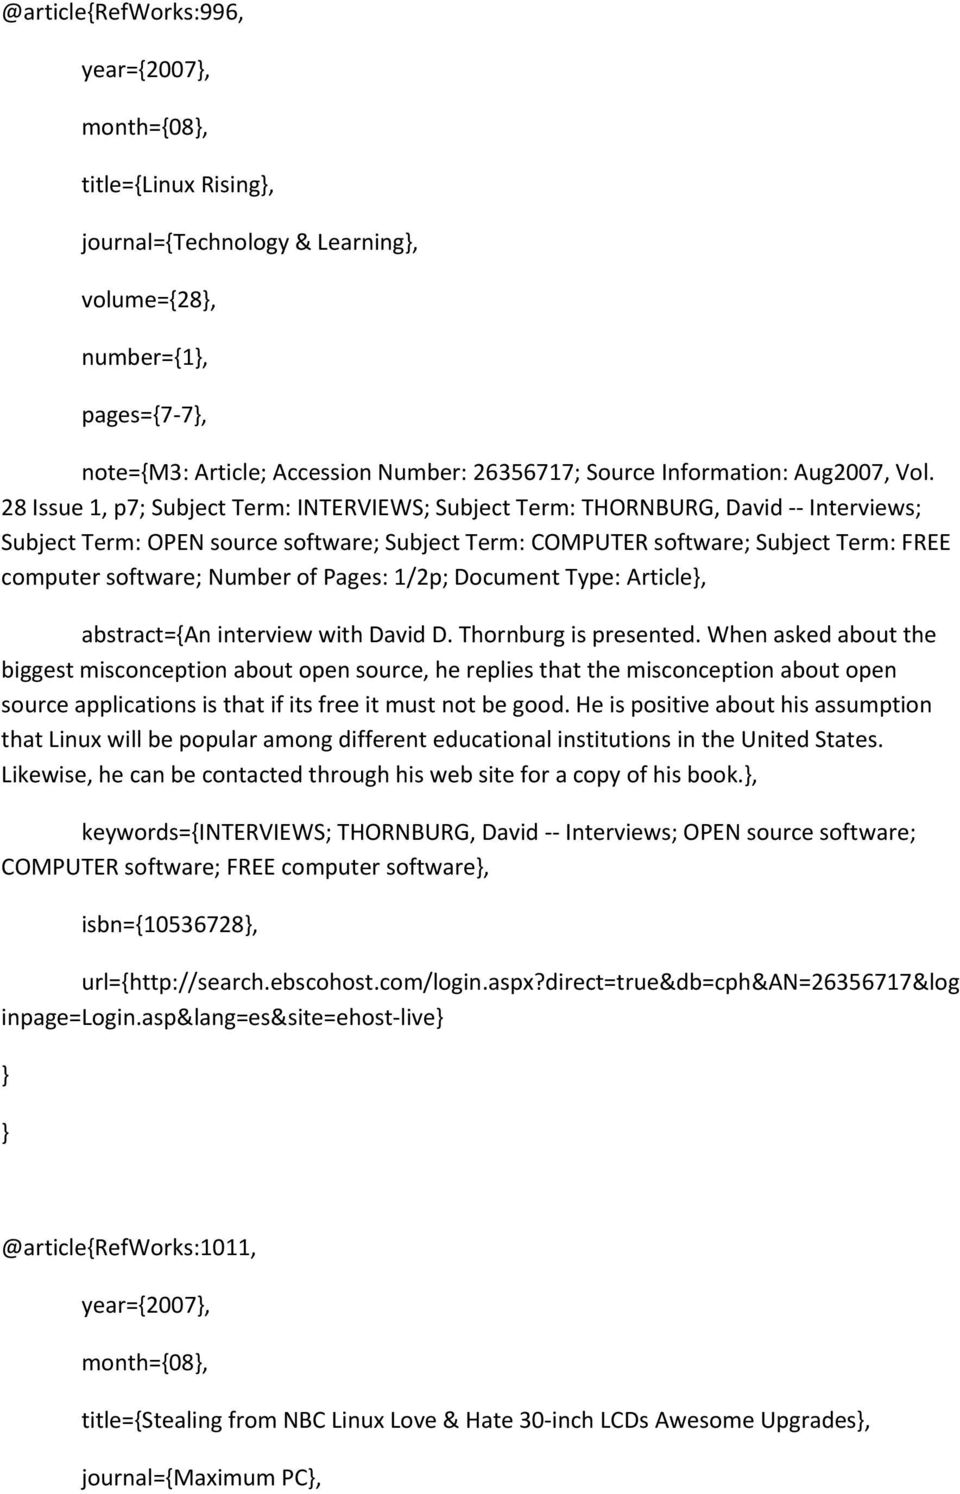 28 Issue 1, p7; Subject Term: INTERVIEWS; Subject Term: THORNBURG, David -- Interviews; Subject Term: OPEN source software; Subject Term: COMPUTER software; Subject Term: FREE computer software;